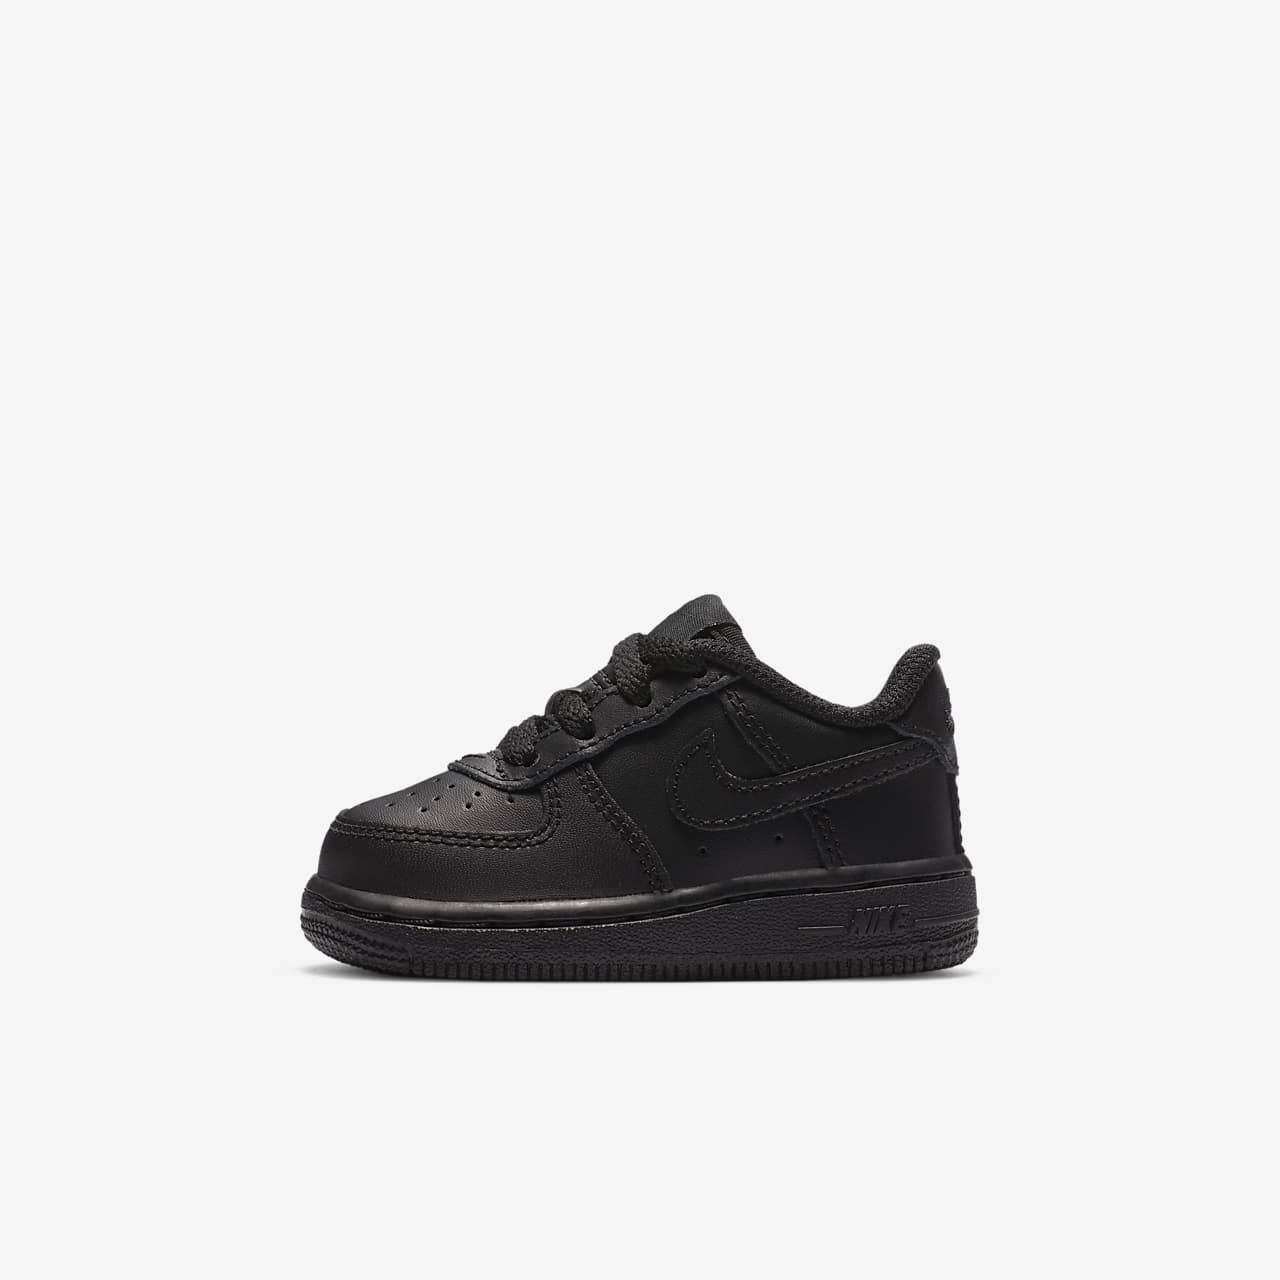 8385cefa7d0 Nike Air Force 1 06 Infant Toddler Shoe. Nike.com